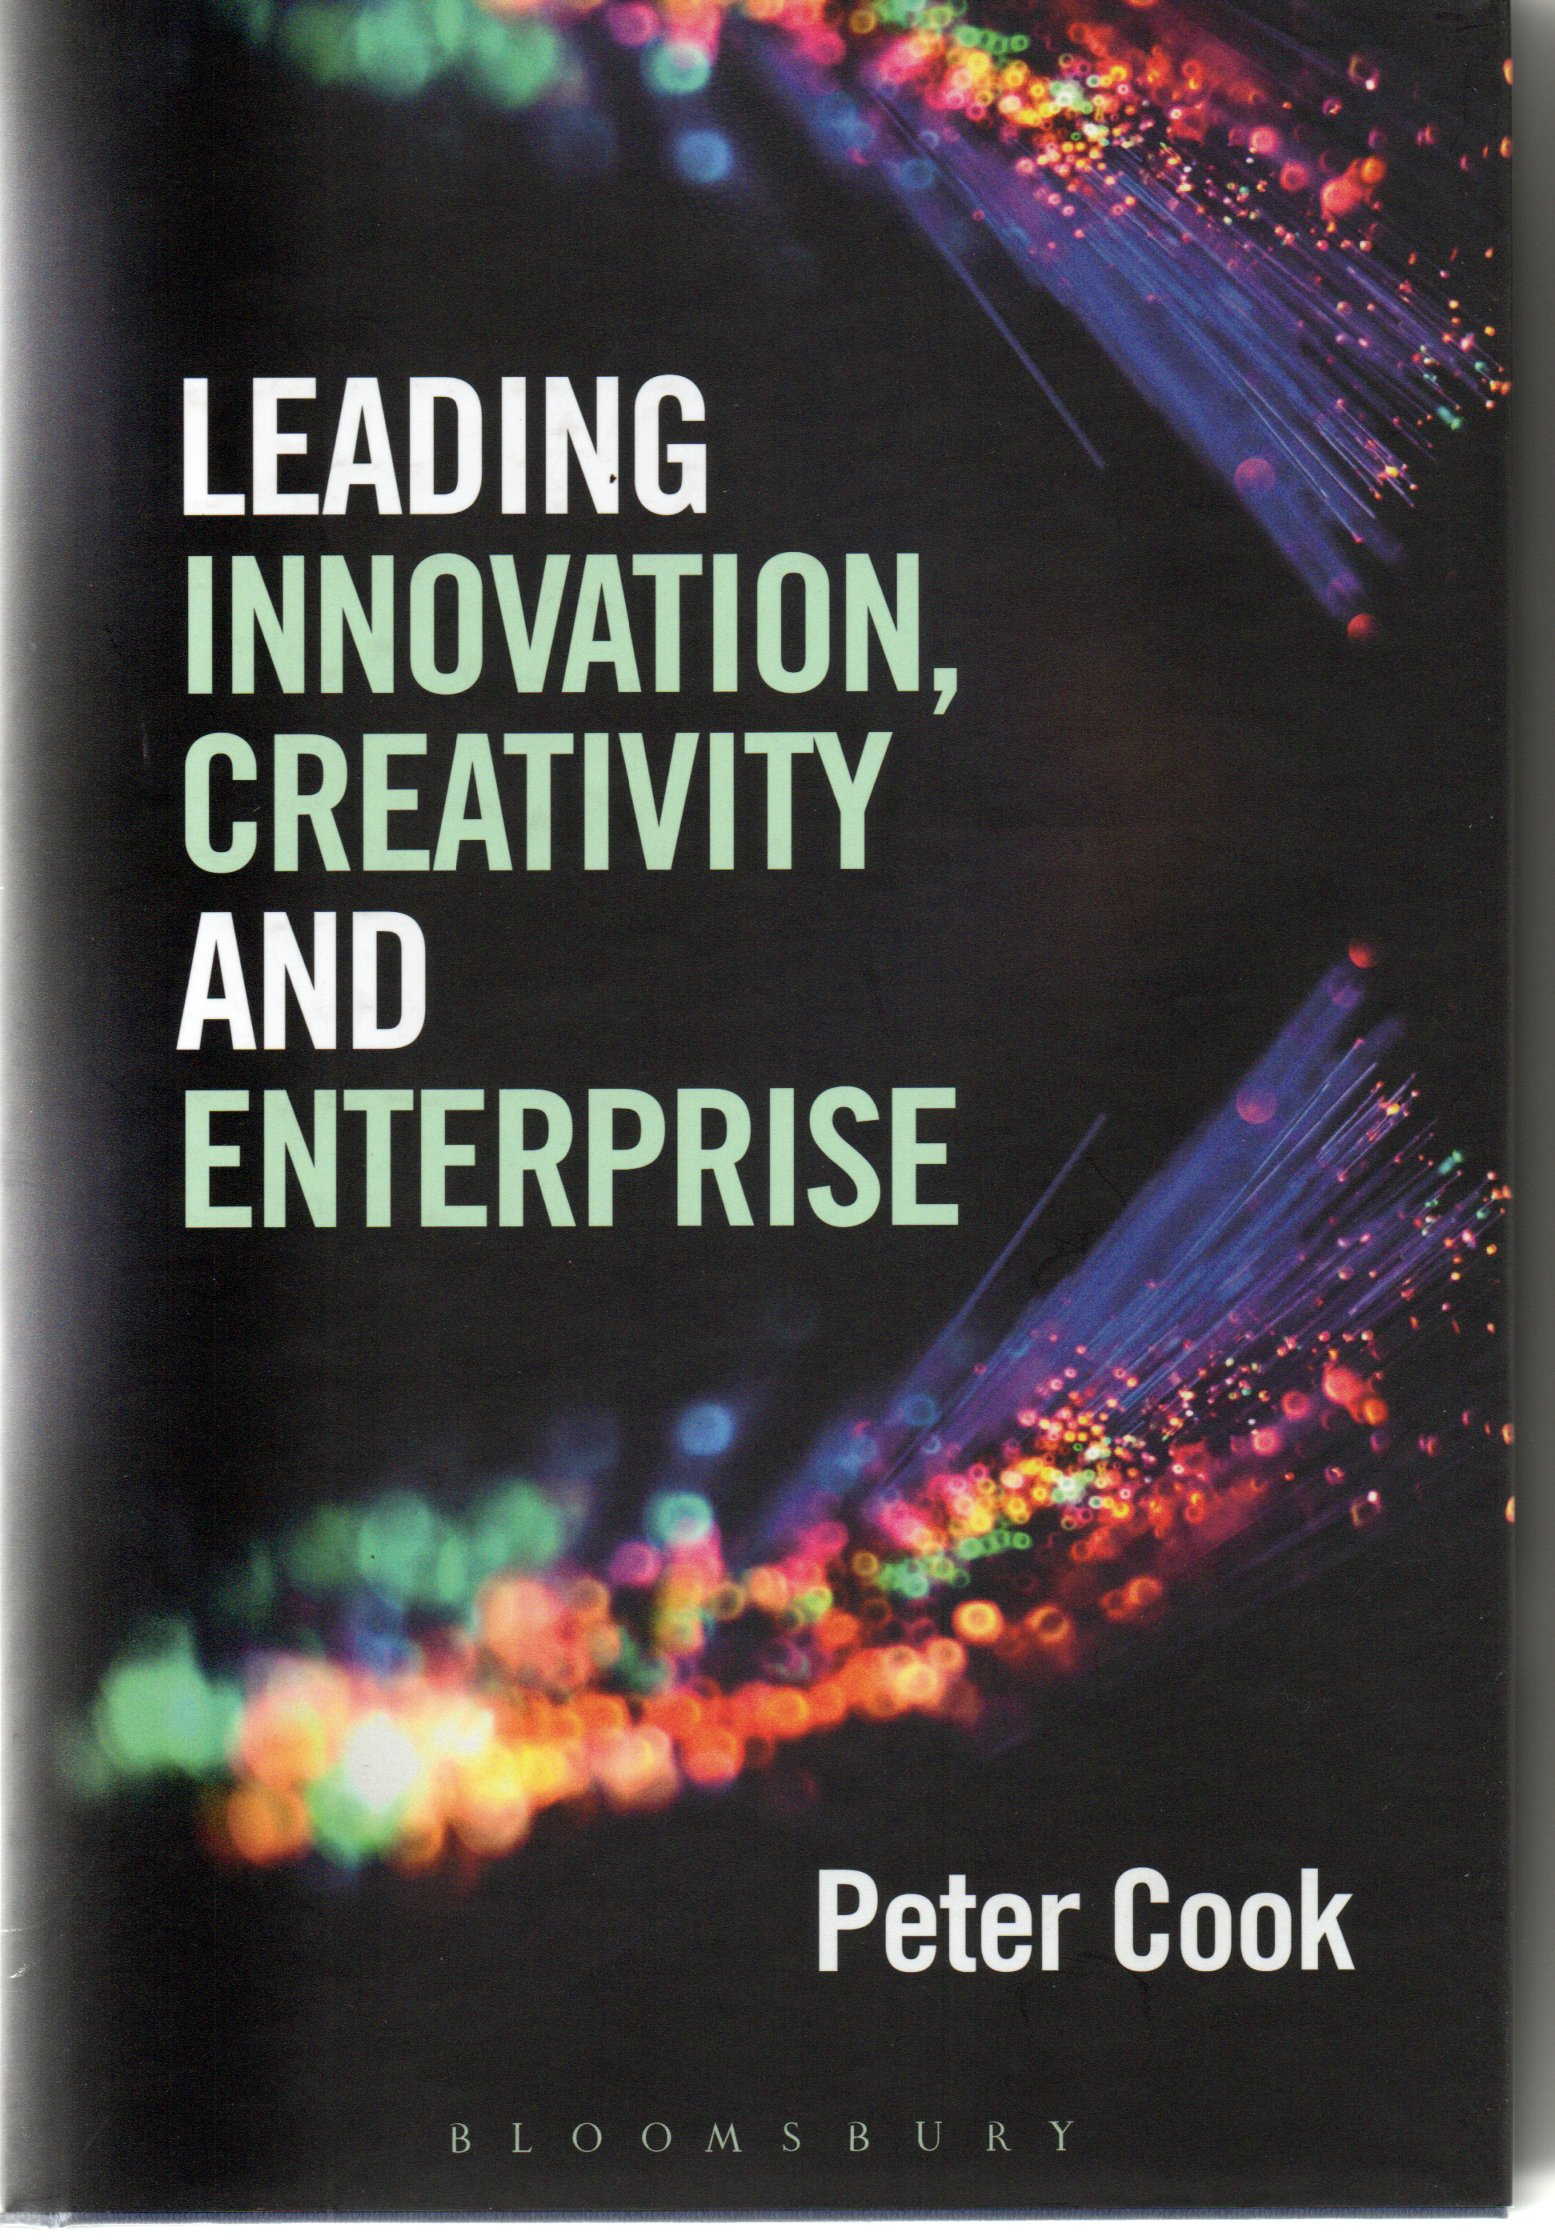 Leading innovation creativity and enterprise / Peter Cook